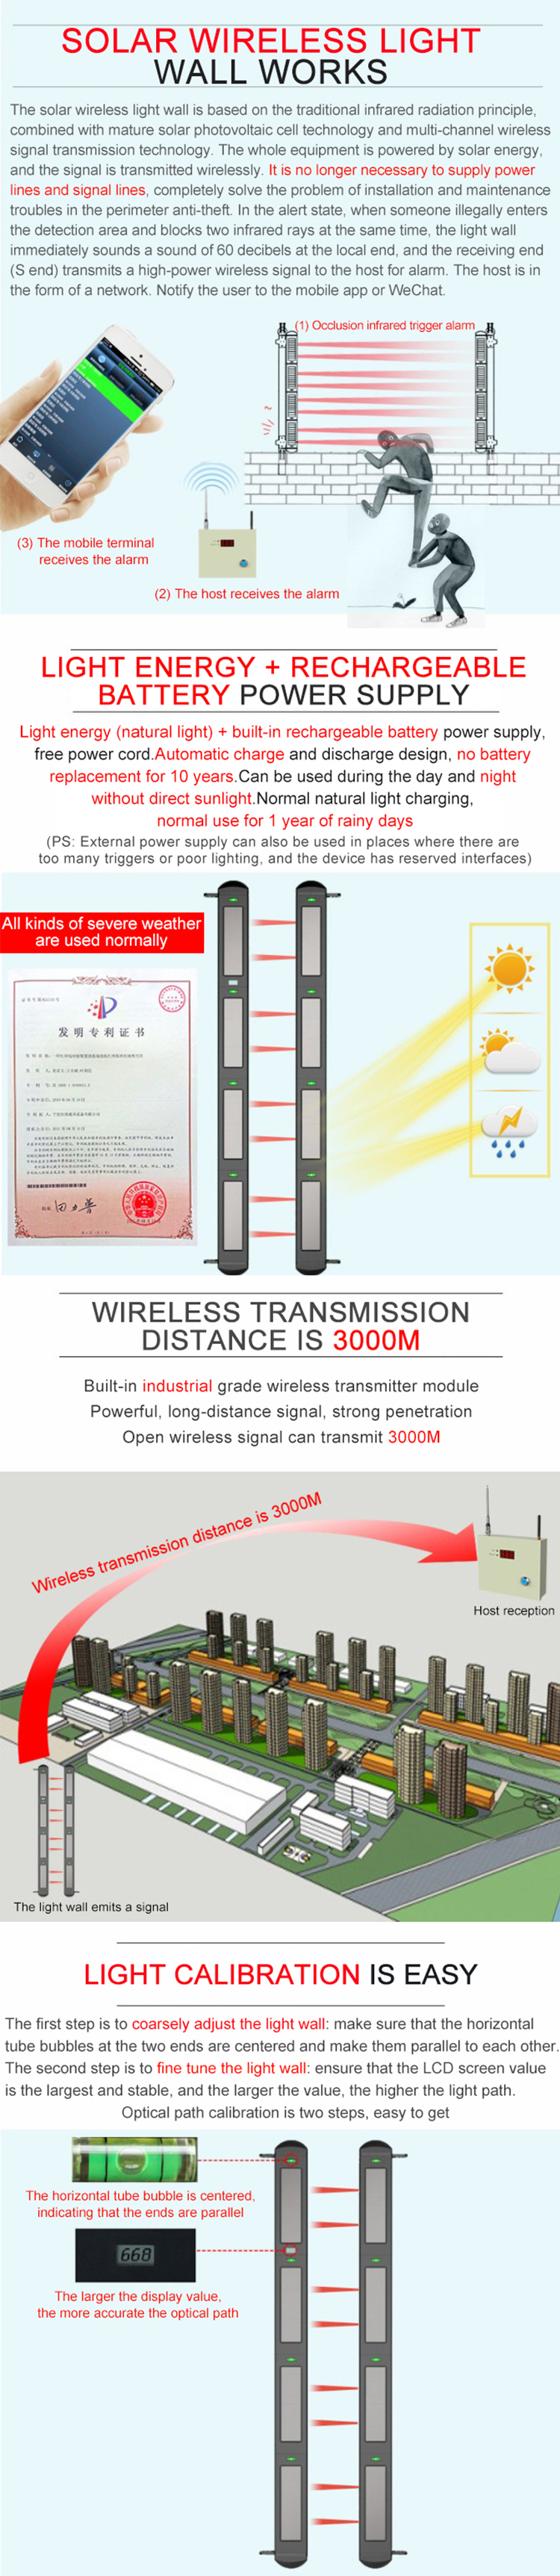 Sensor intrusion detection laser security alarm system